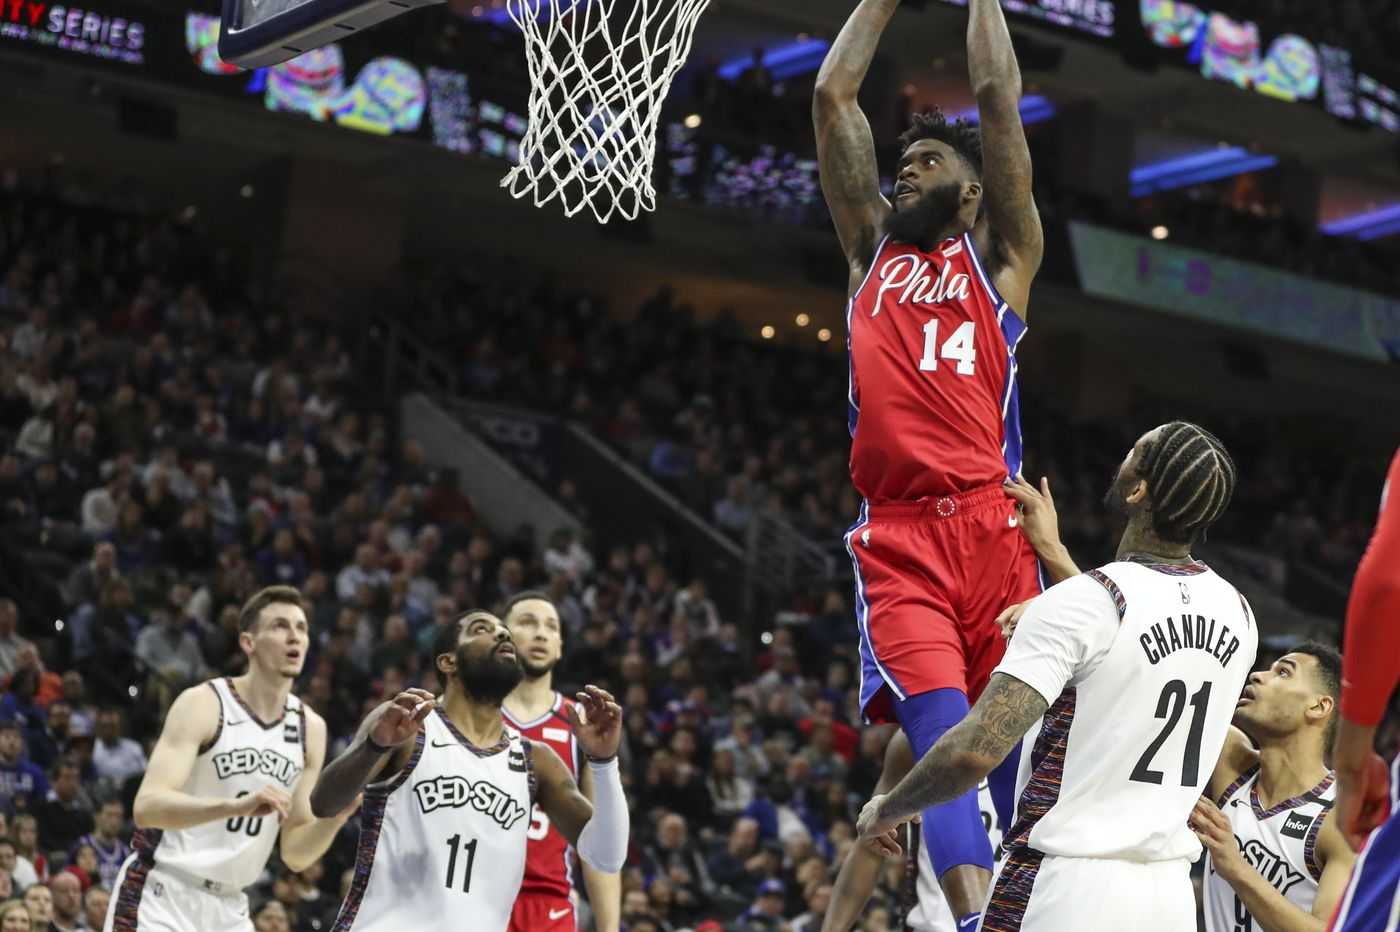 Norvel Pelle unaware of next step, says it's up to agent and Sixers front office